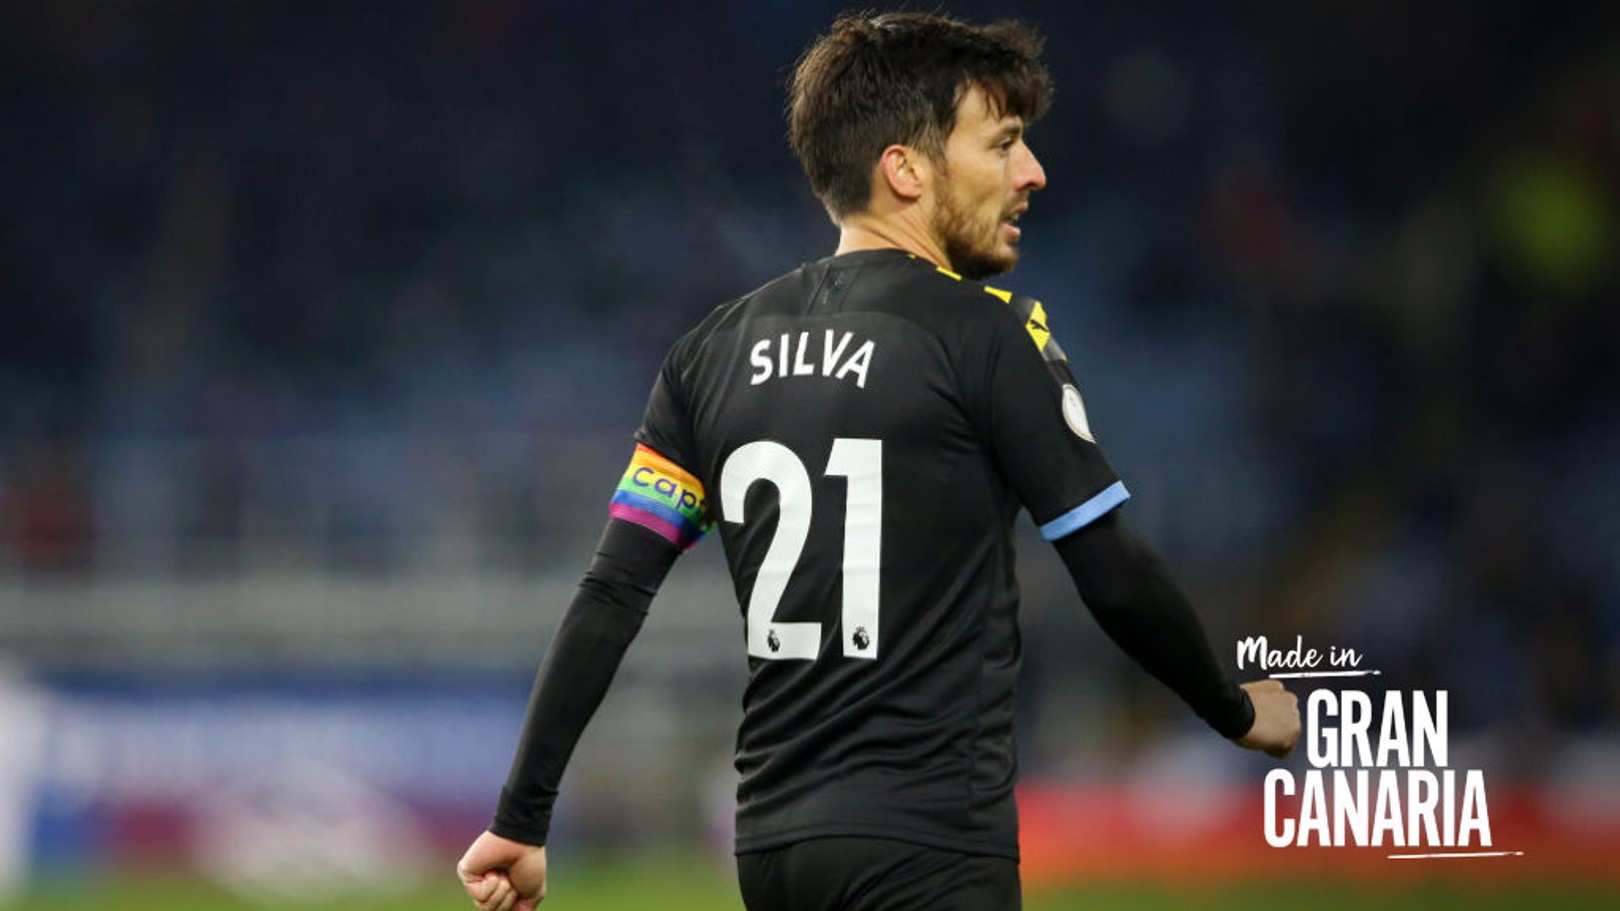 MADE IN GRAN CANARIA: Silva has revealed how he started wearing the No. 21 shirt